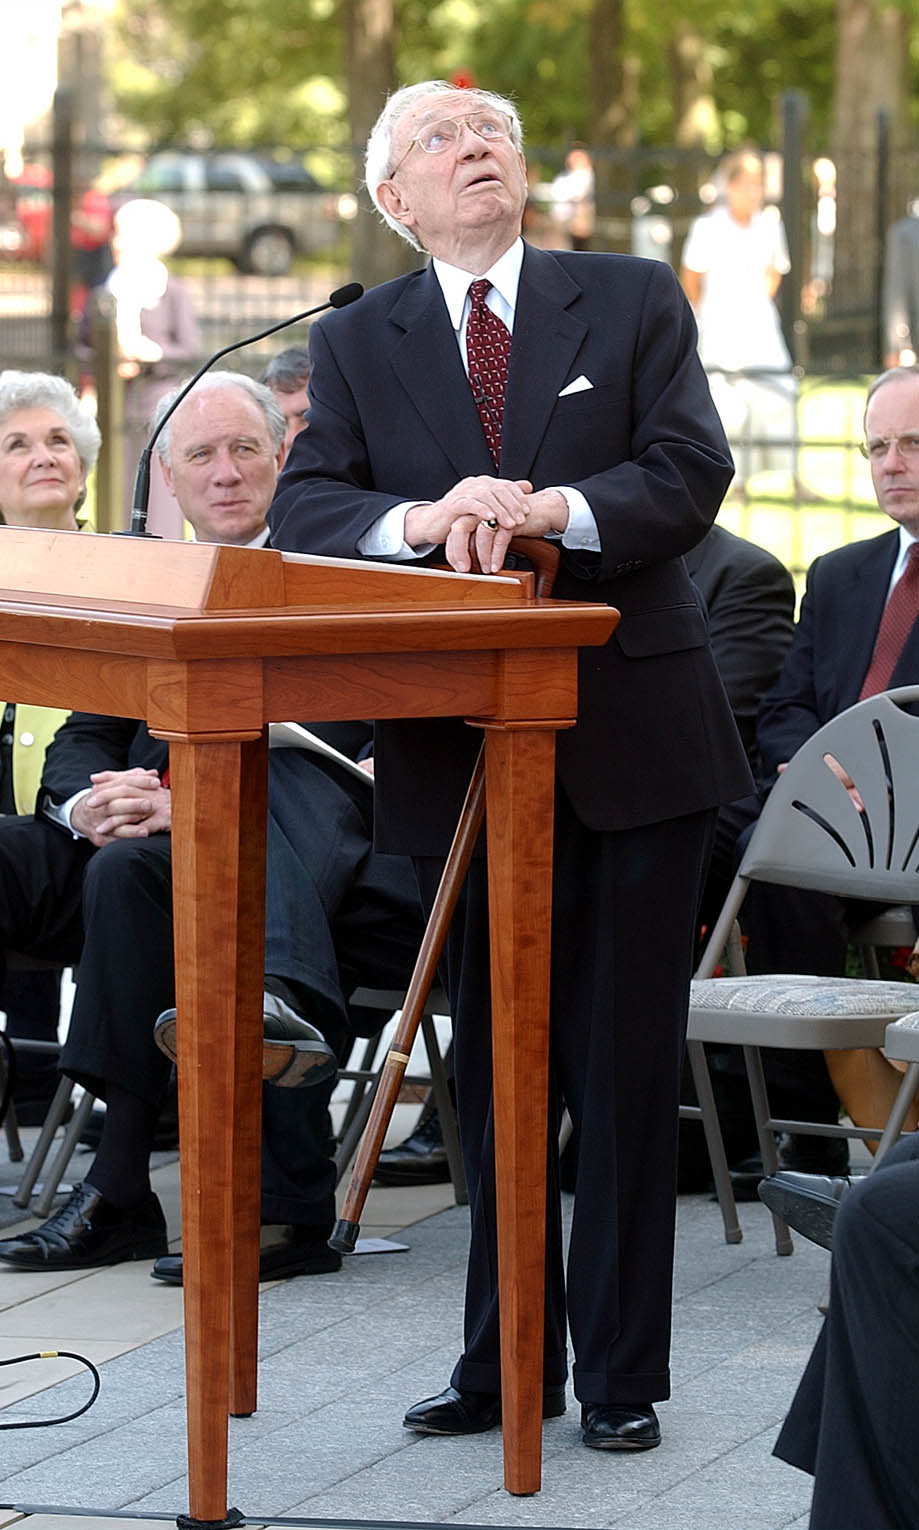 President Gordon B. Hinckley speaks about the Moroni statue at a press conference at the Nauvoo LDS Temple June 27th, 2002.